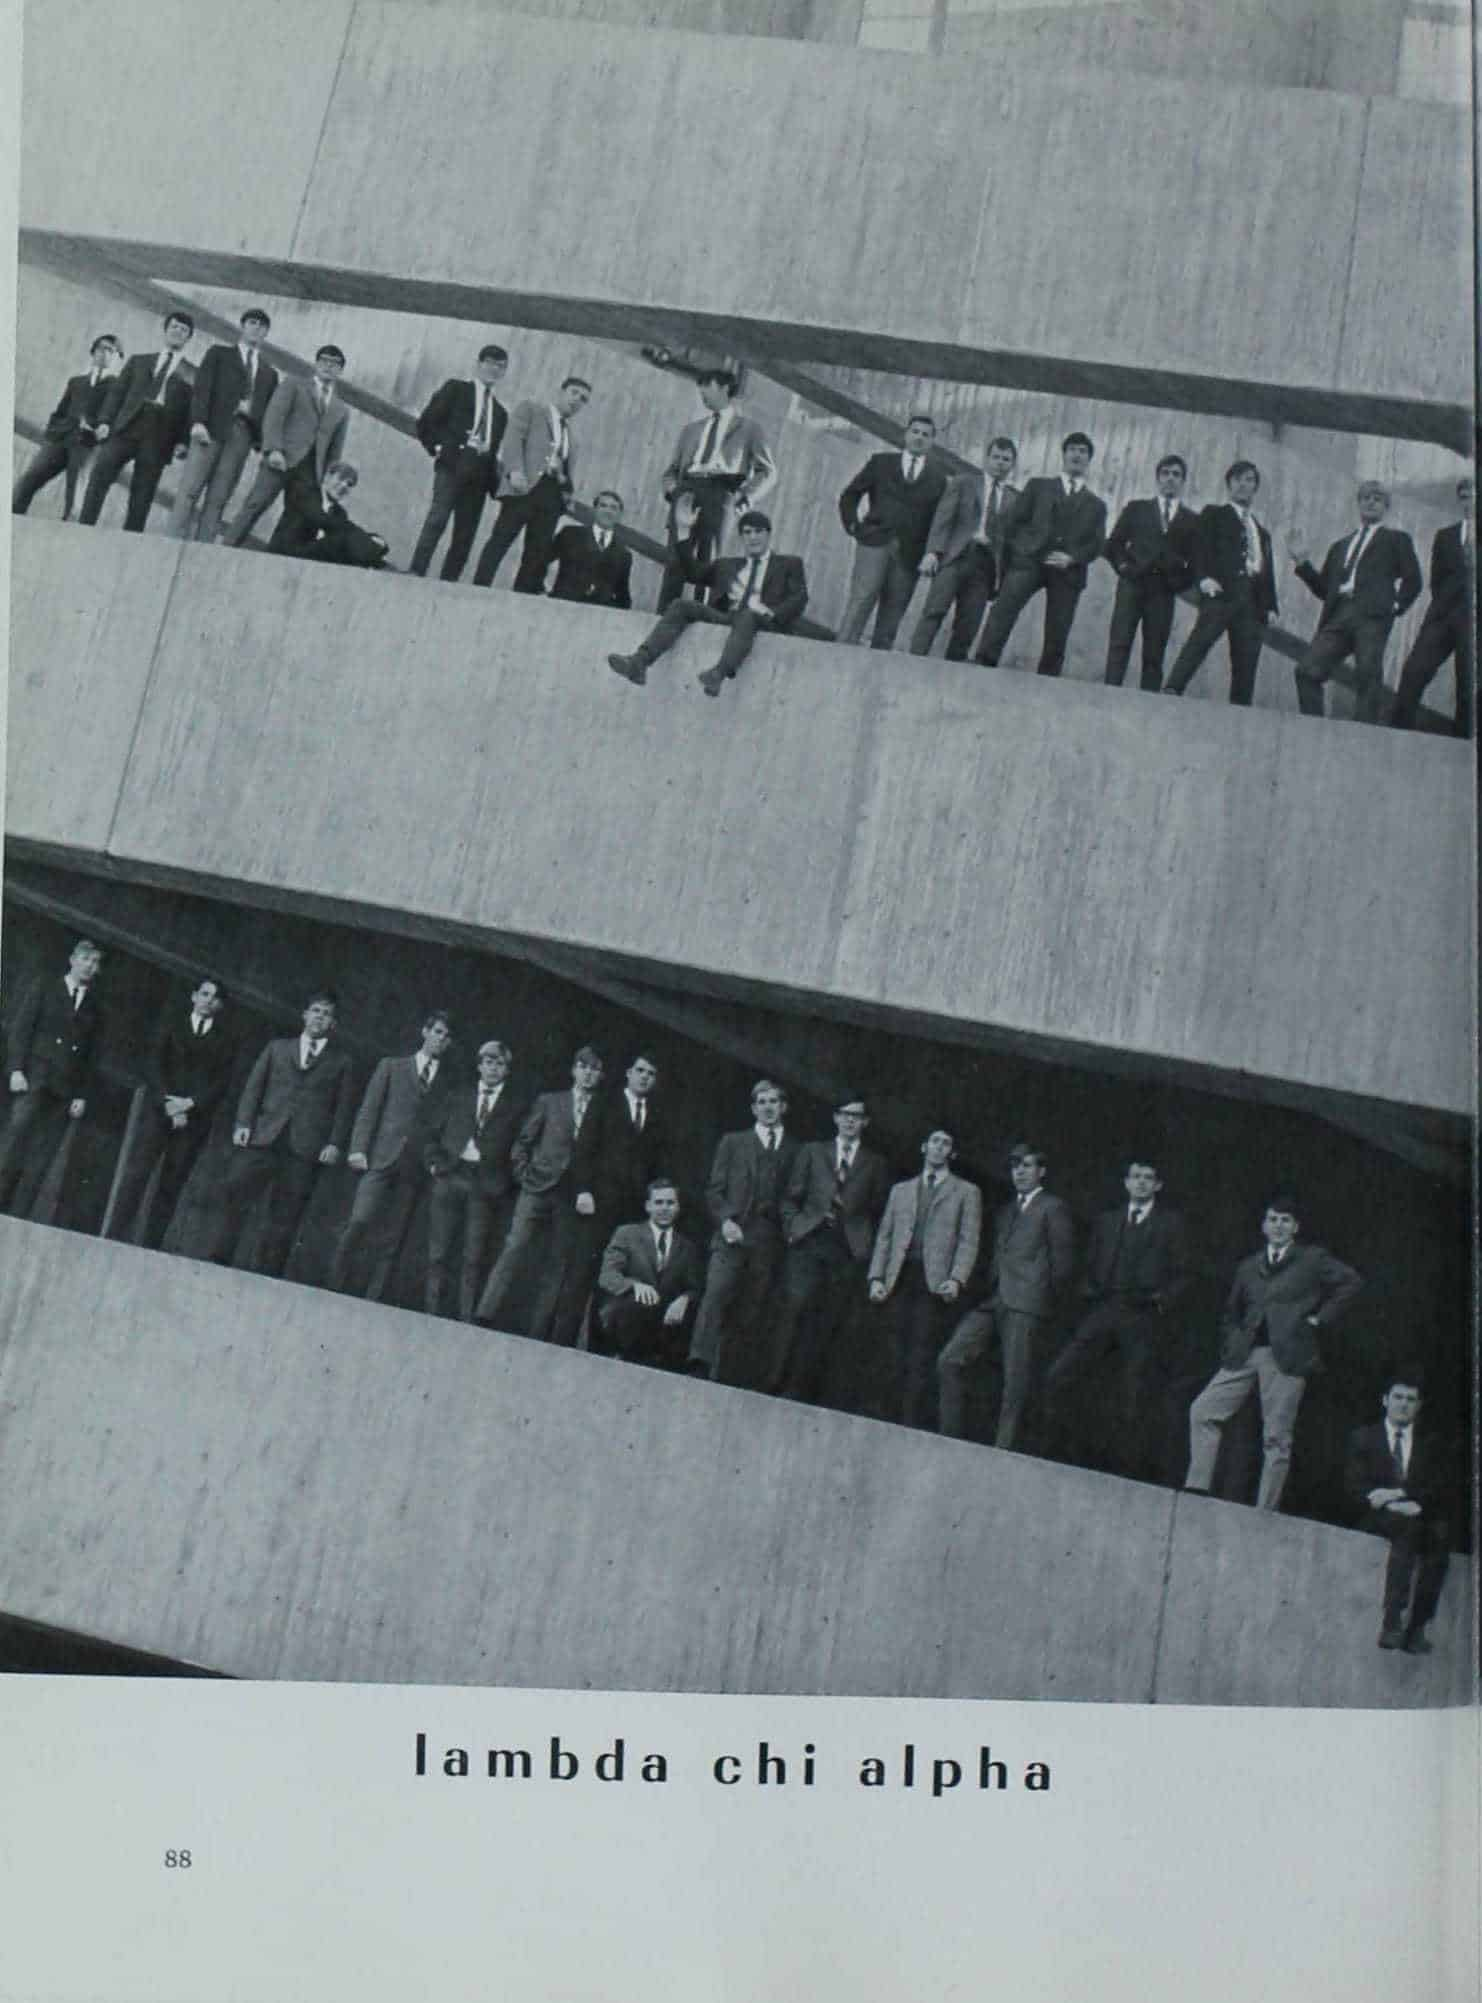 1969 Iowa State Yearbook p.1